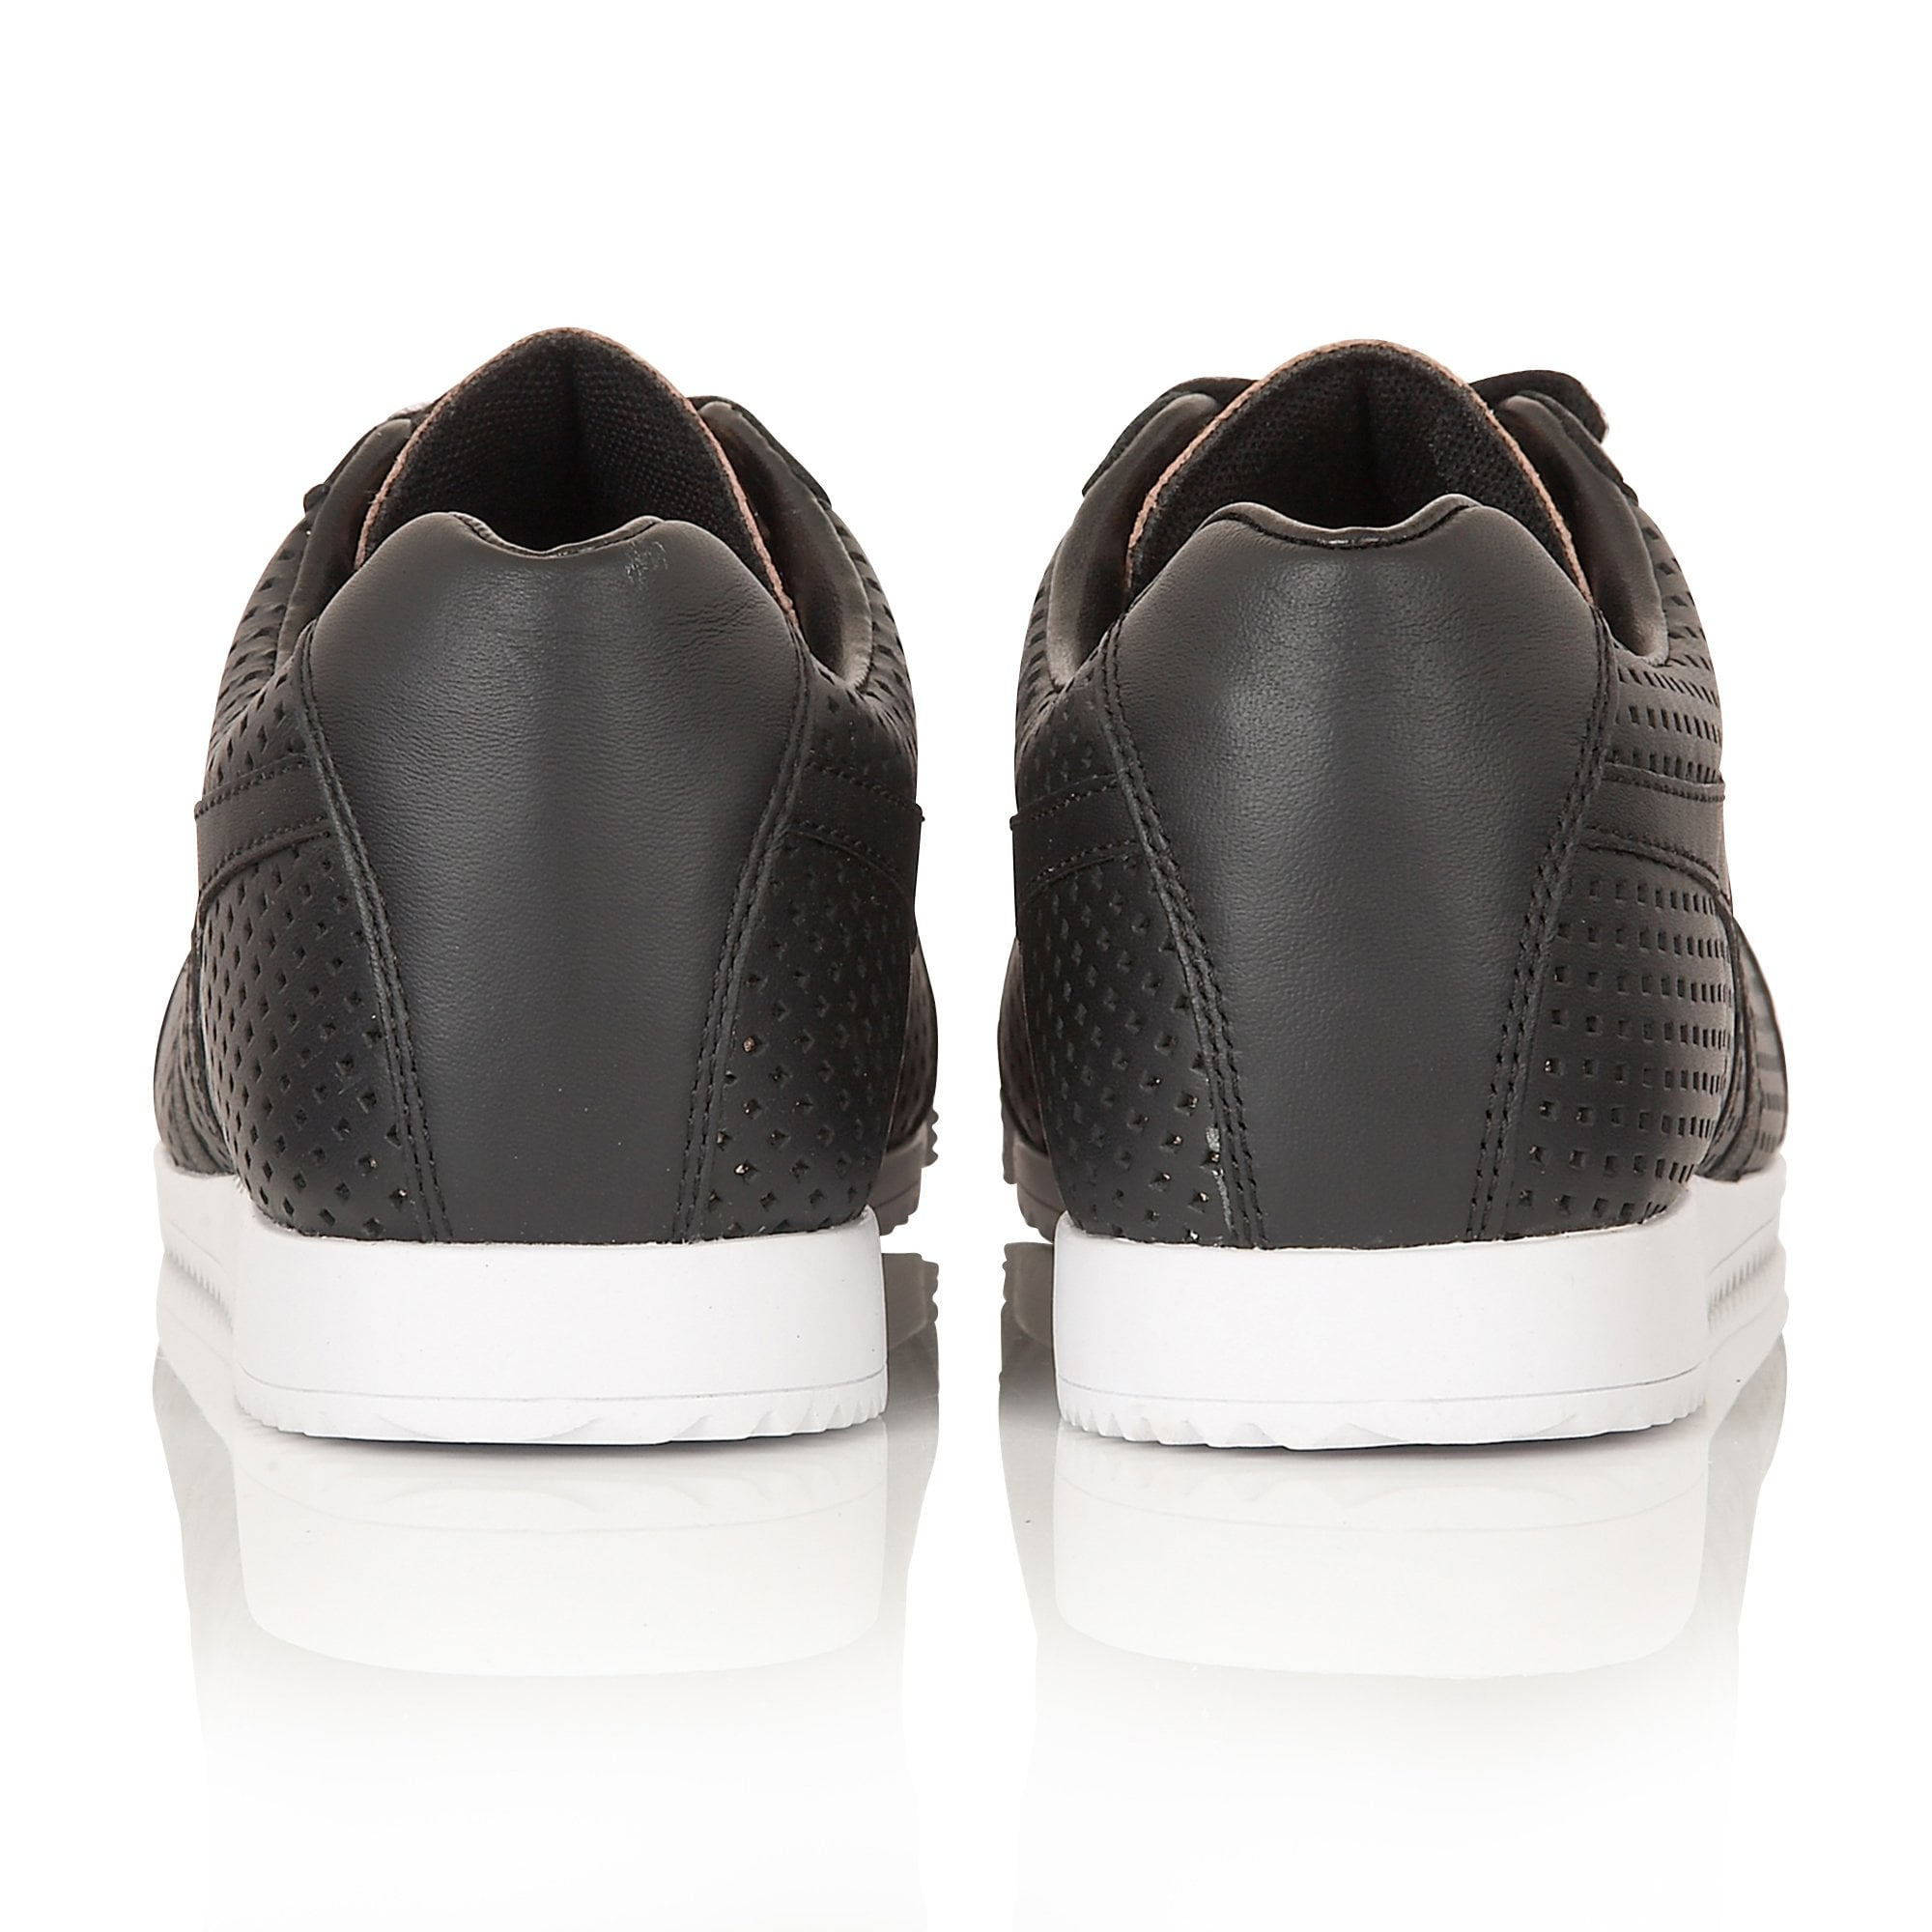 Women's Harrier Glimmer Leather Sneakers